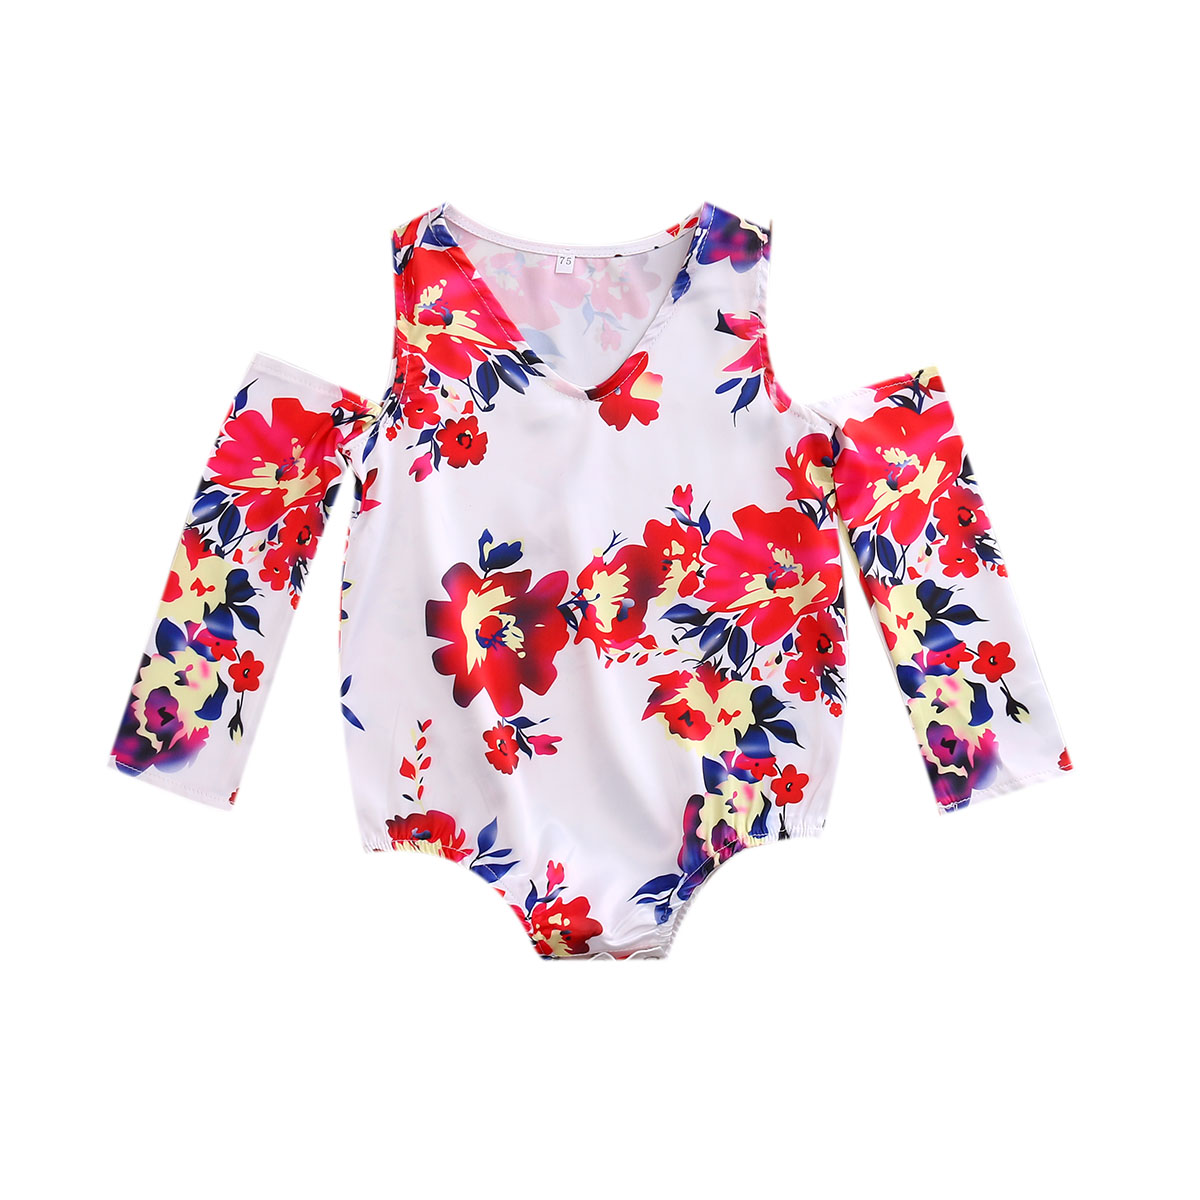 HOT selling Floral Off Shoulder Baby clothing Toddler Kids Baby Girls Romper Jumpsuit Outfits Clothes 0-4T